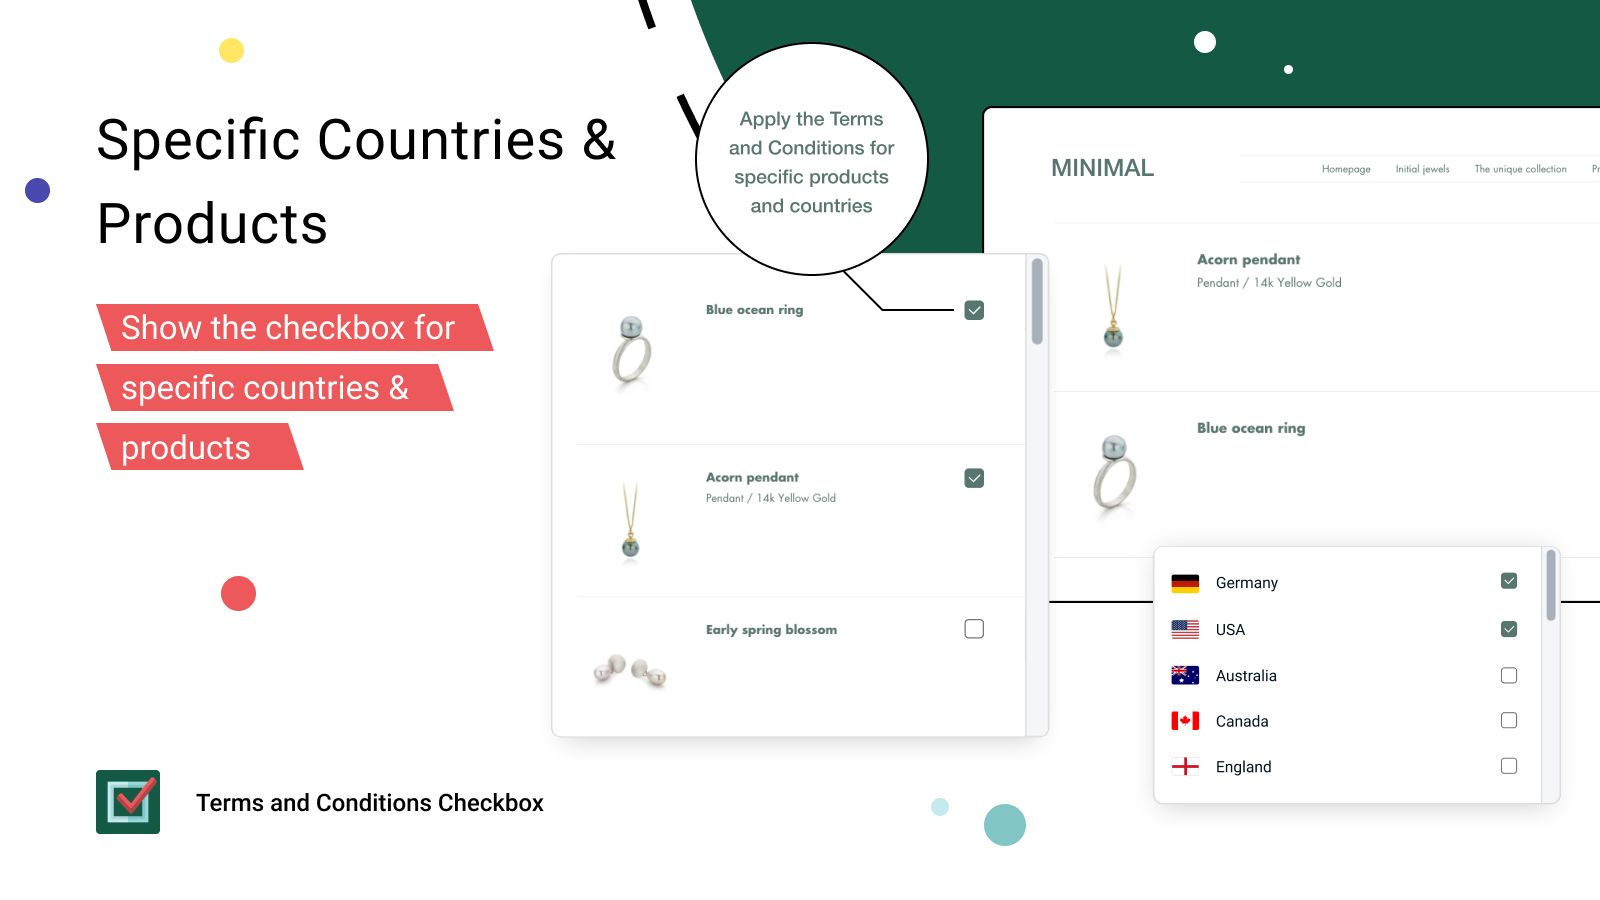 The checkbox can be added for specific products and countries